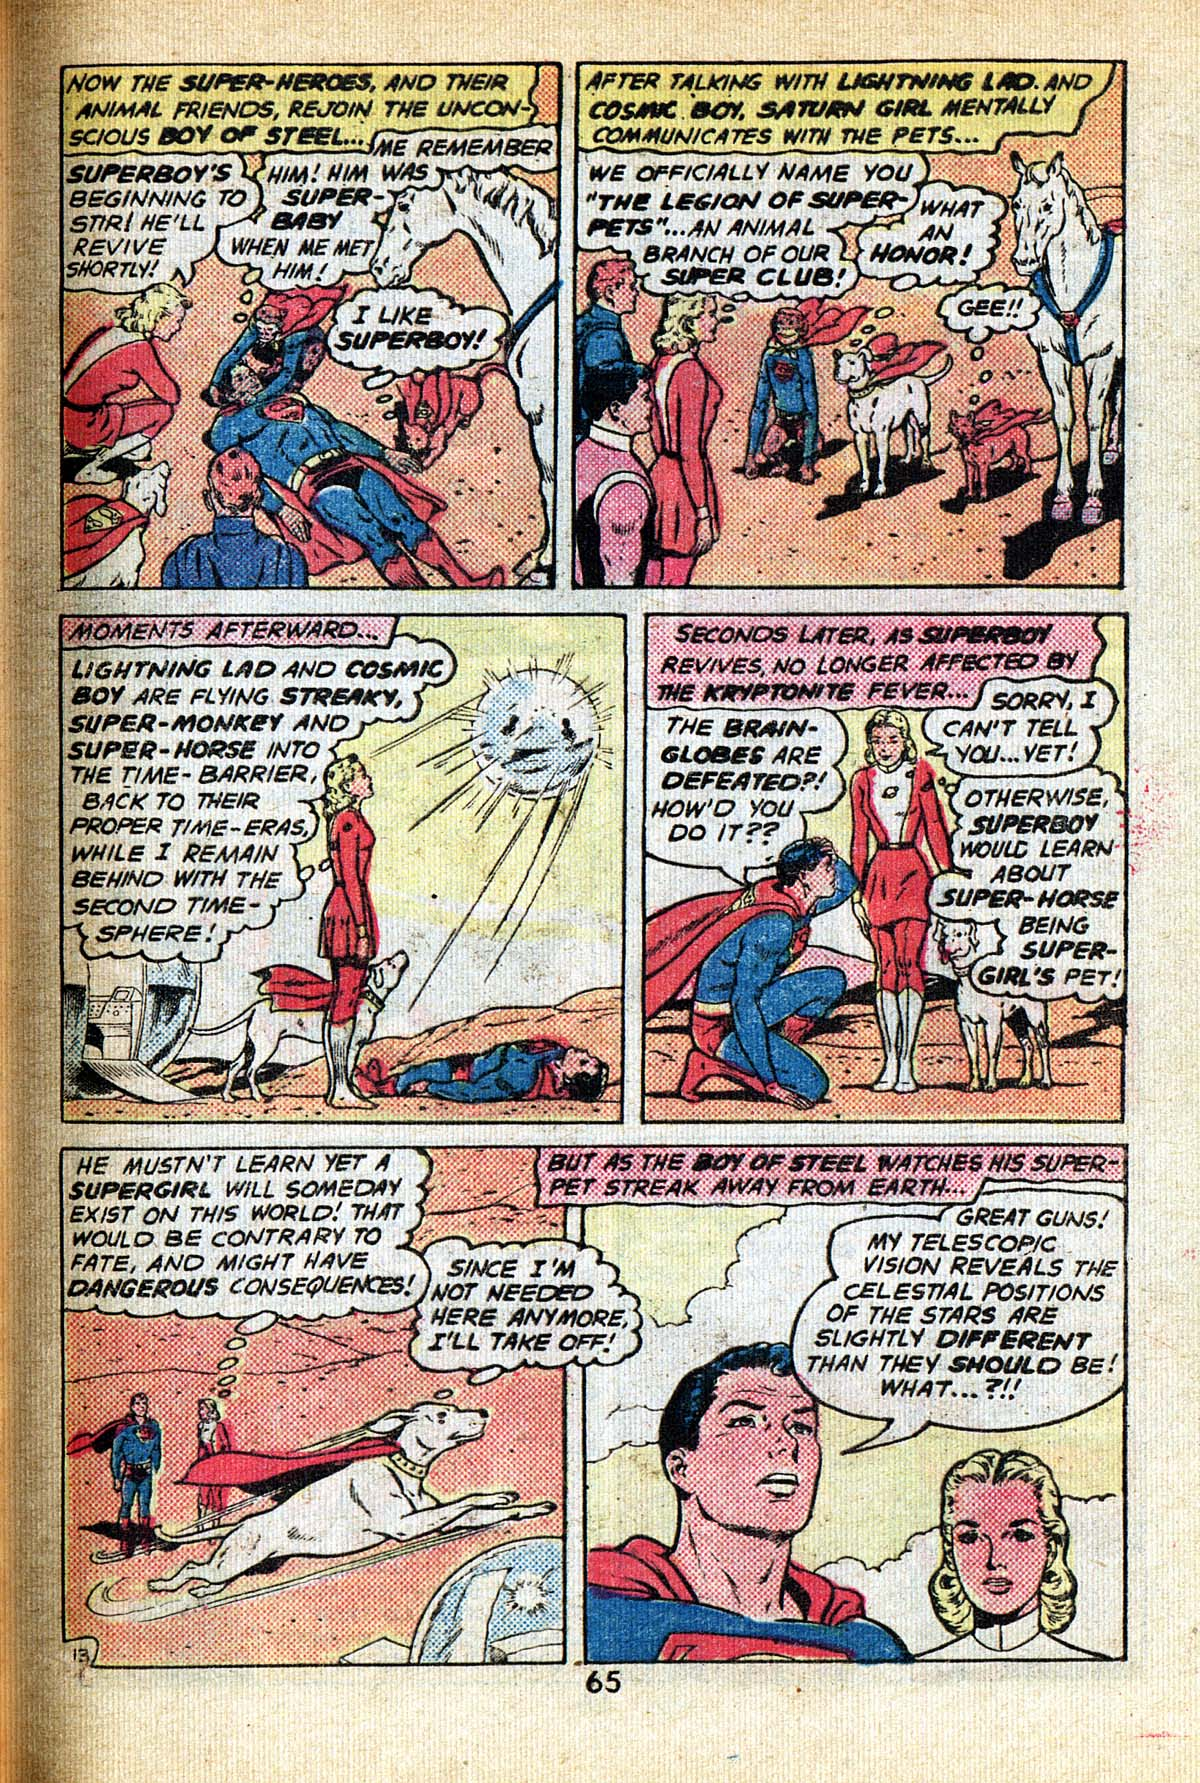 Read online Adventure Comics (1938) comic -  Issue #495 - 65